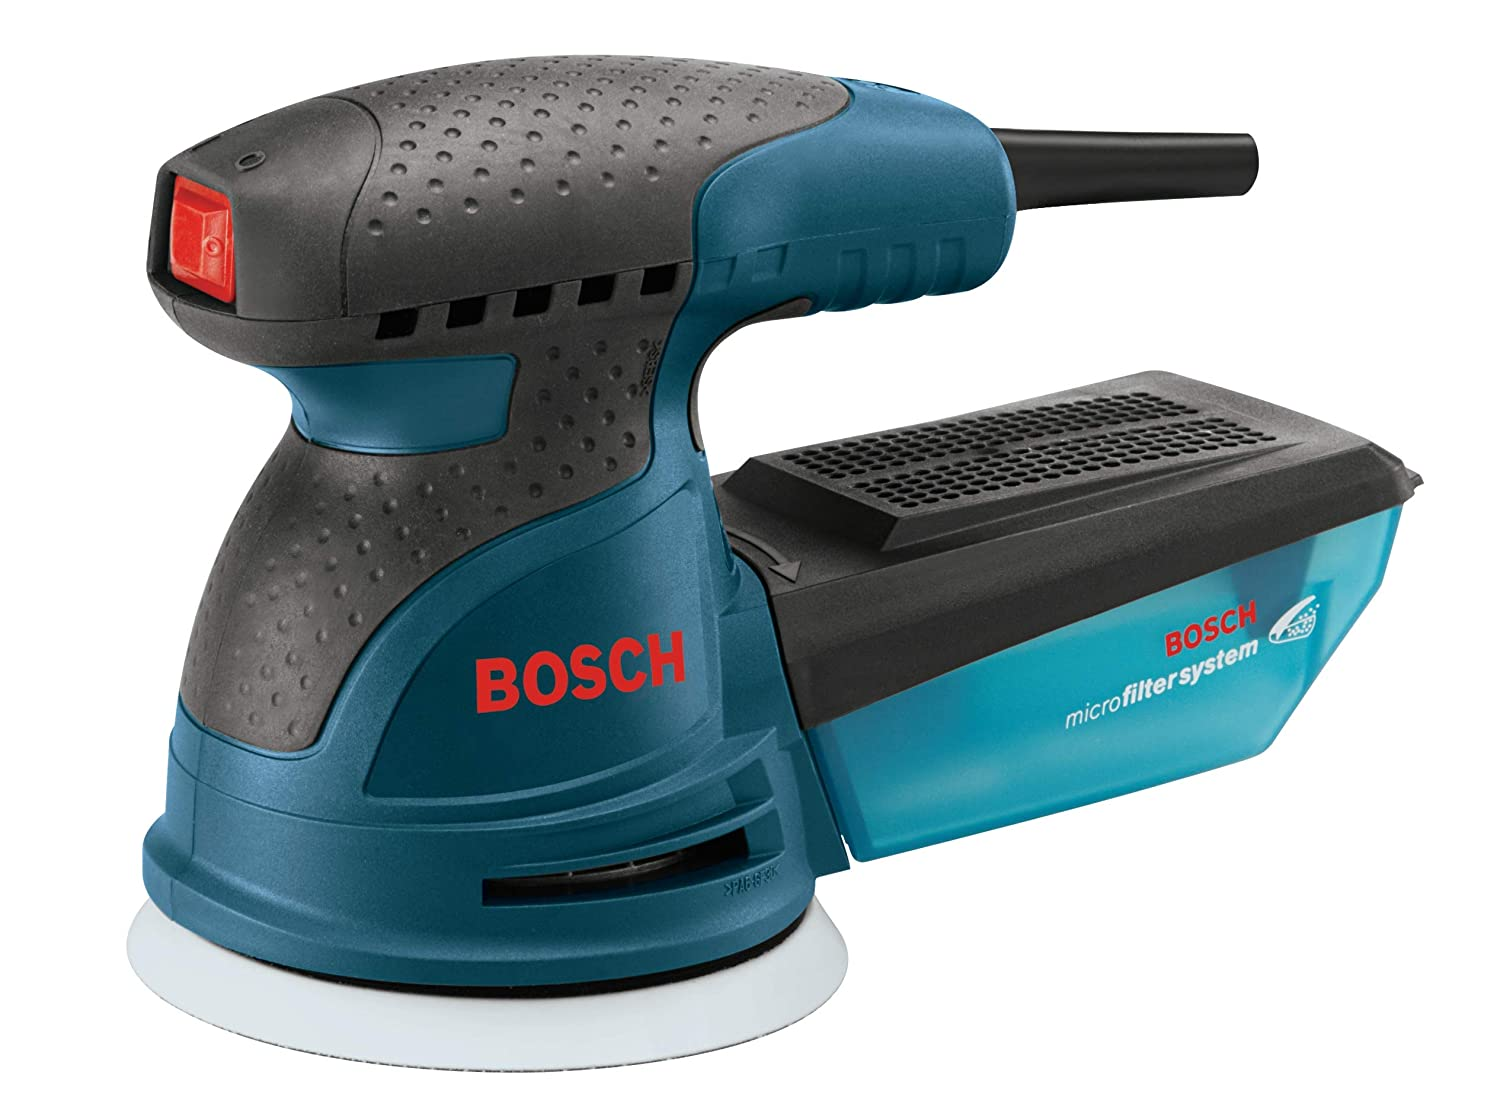 Bosch ROS20VSC featured image 3